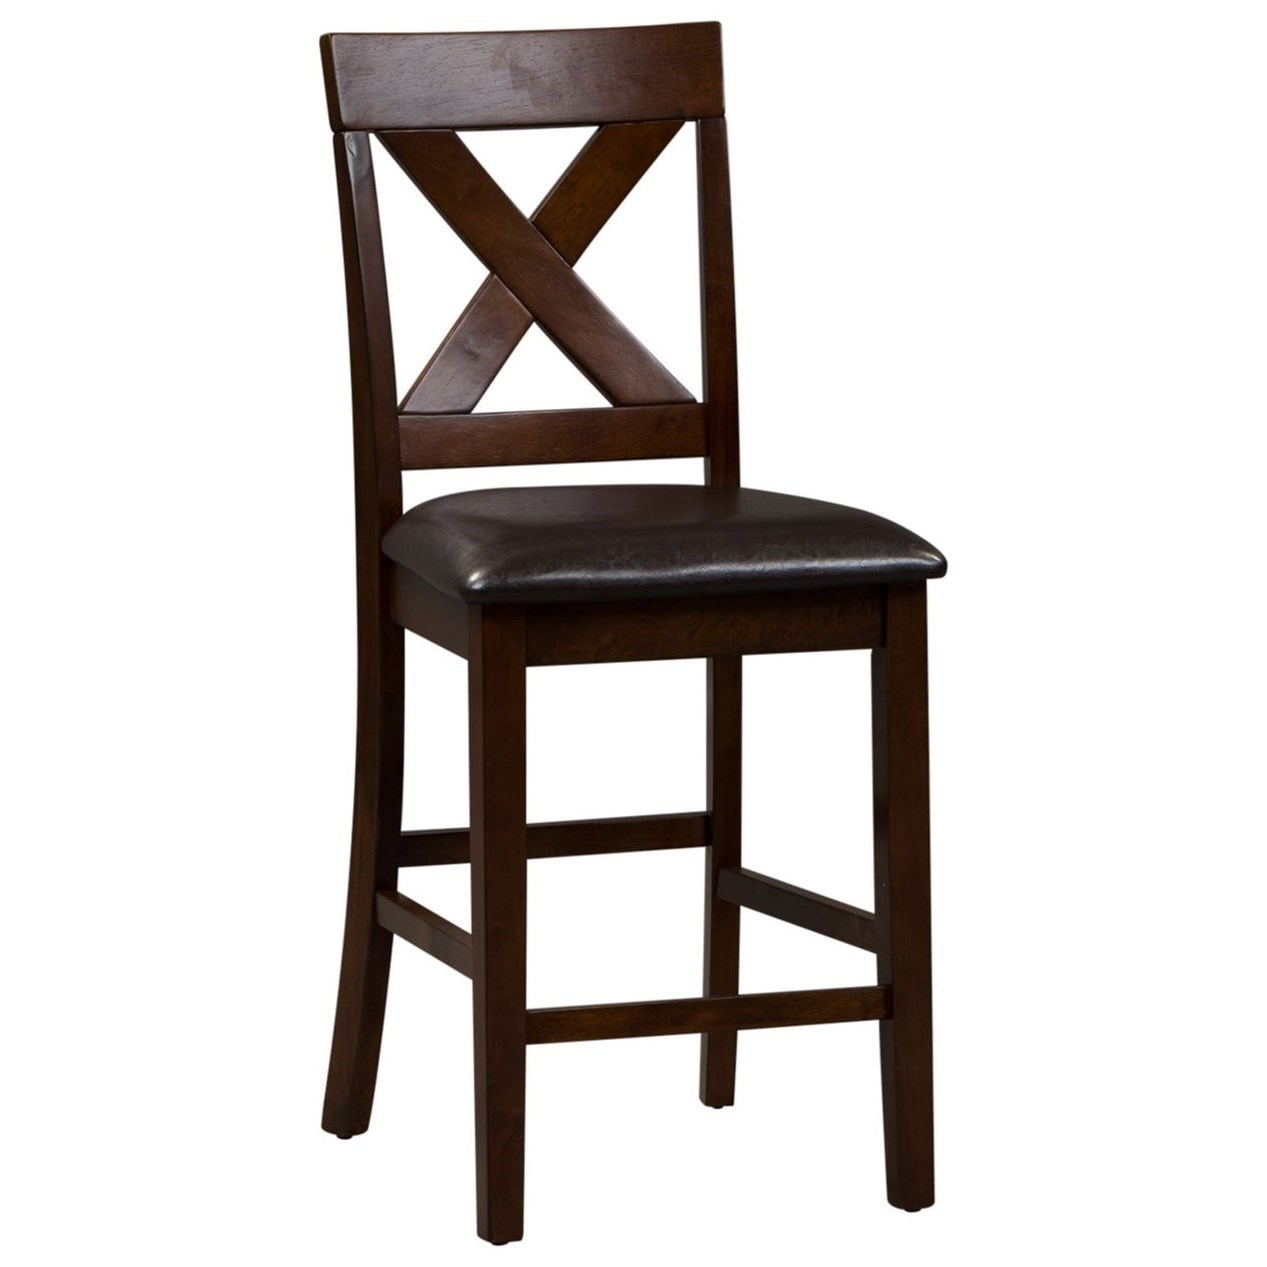 Thornton X-Back Counter Chair by Libby at Walker's Furniture